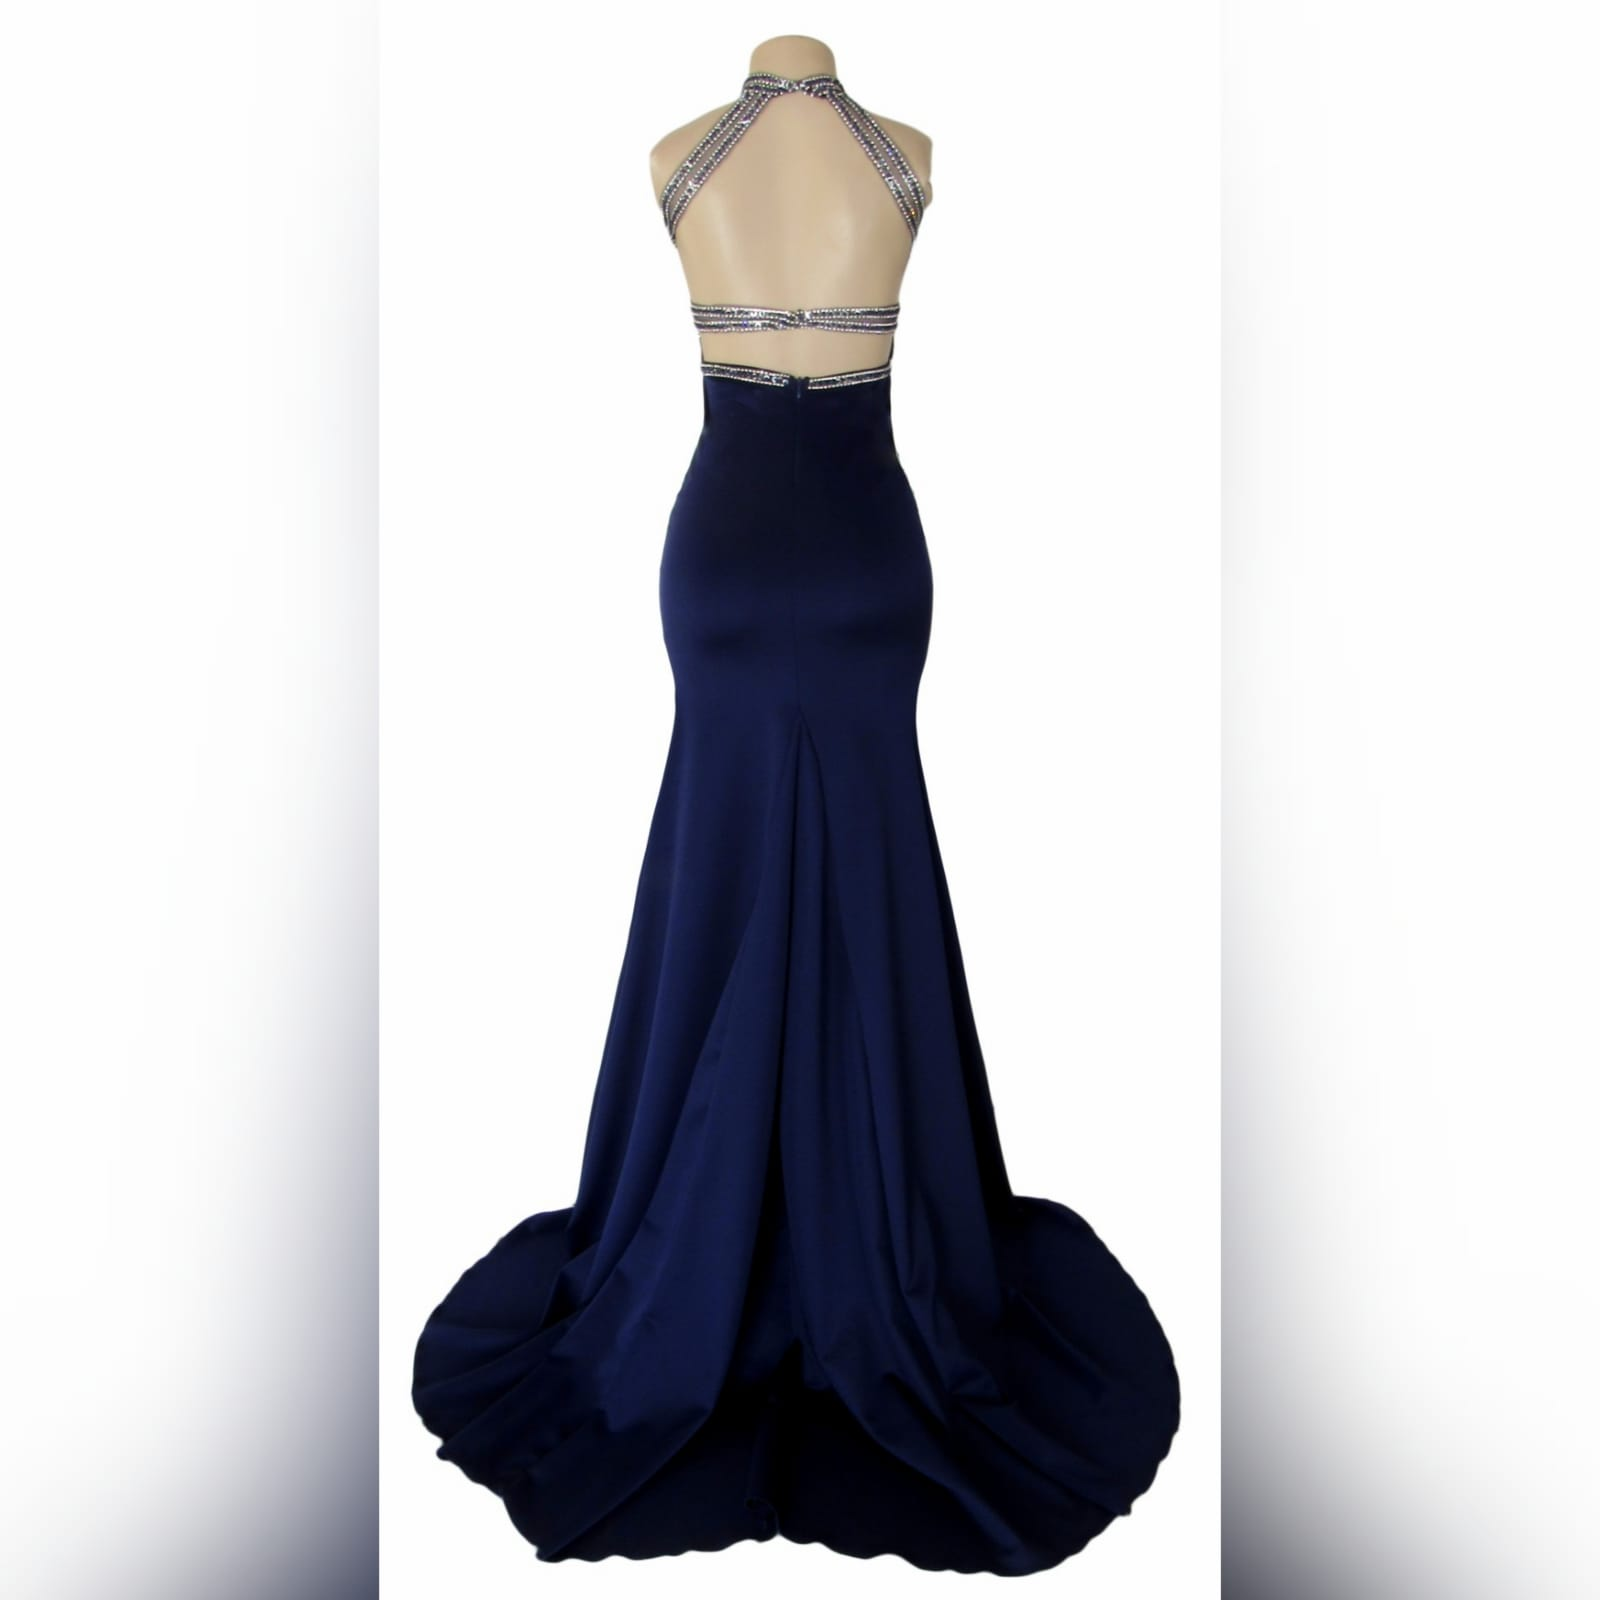 Navy blue silver beaded prom dress 2 navy blue silver beaded prom dress with an illusion neckline and a choker effect. Backless design detailed with beaded straps. Fitted bottom with a slit and a train.